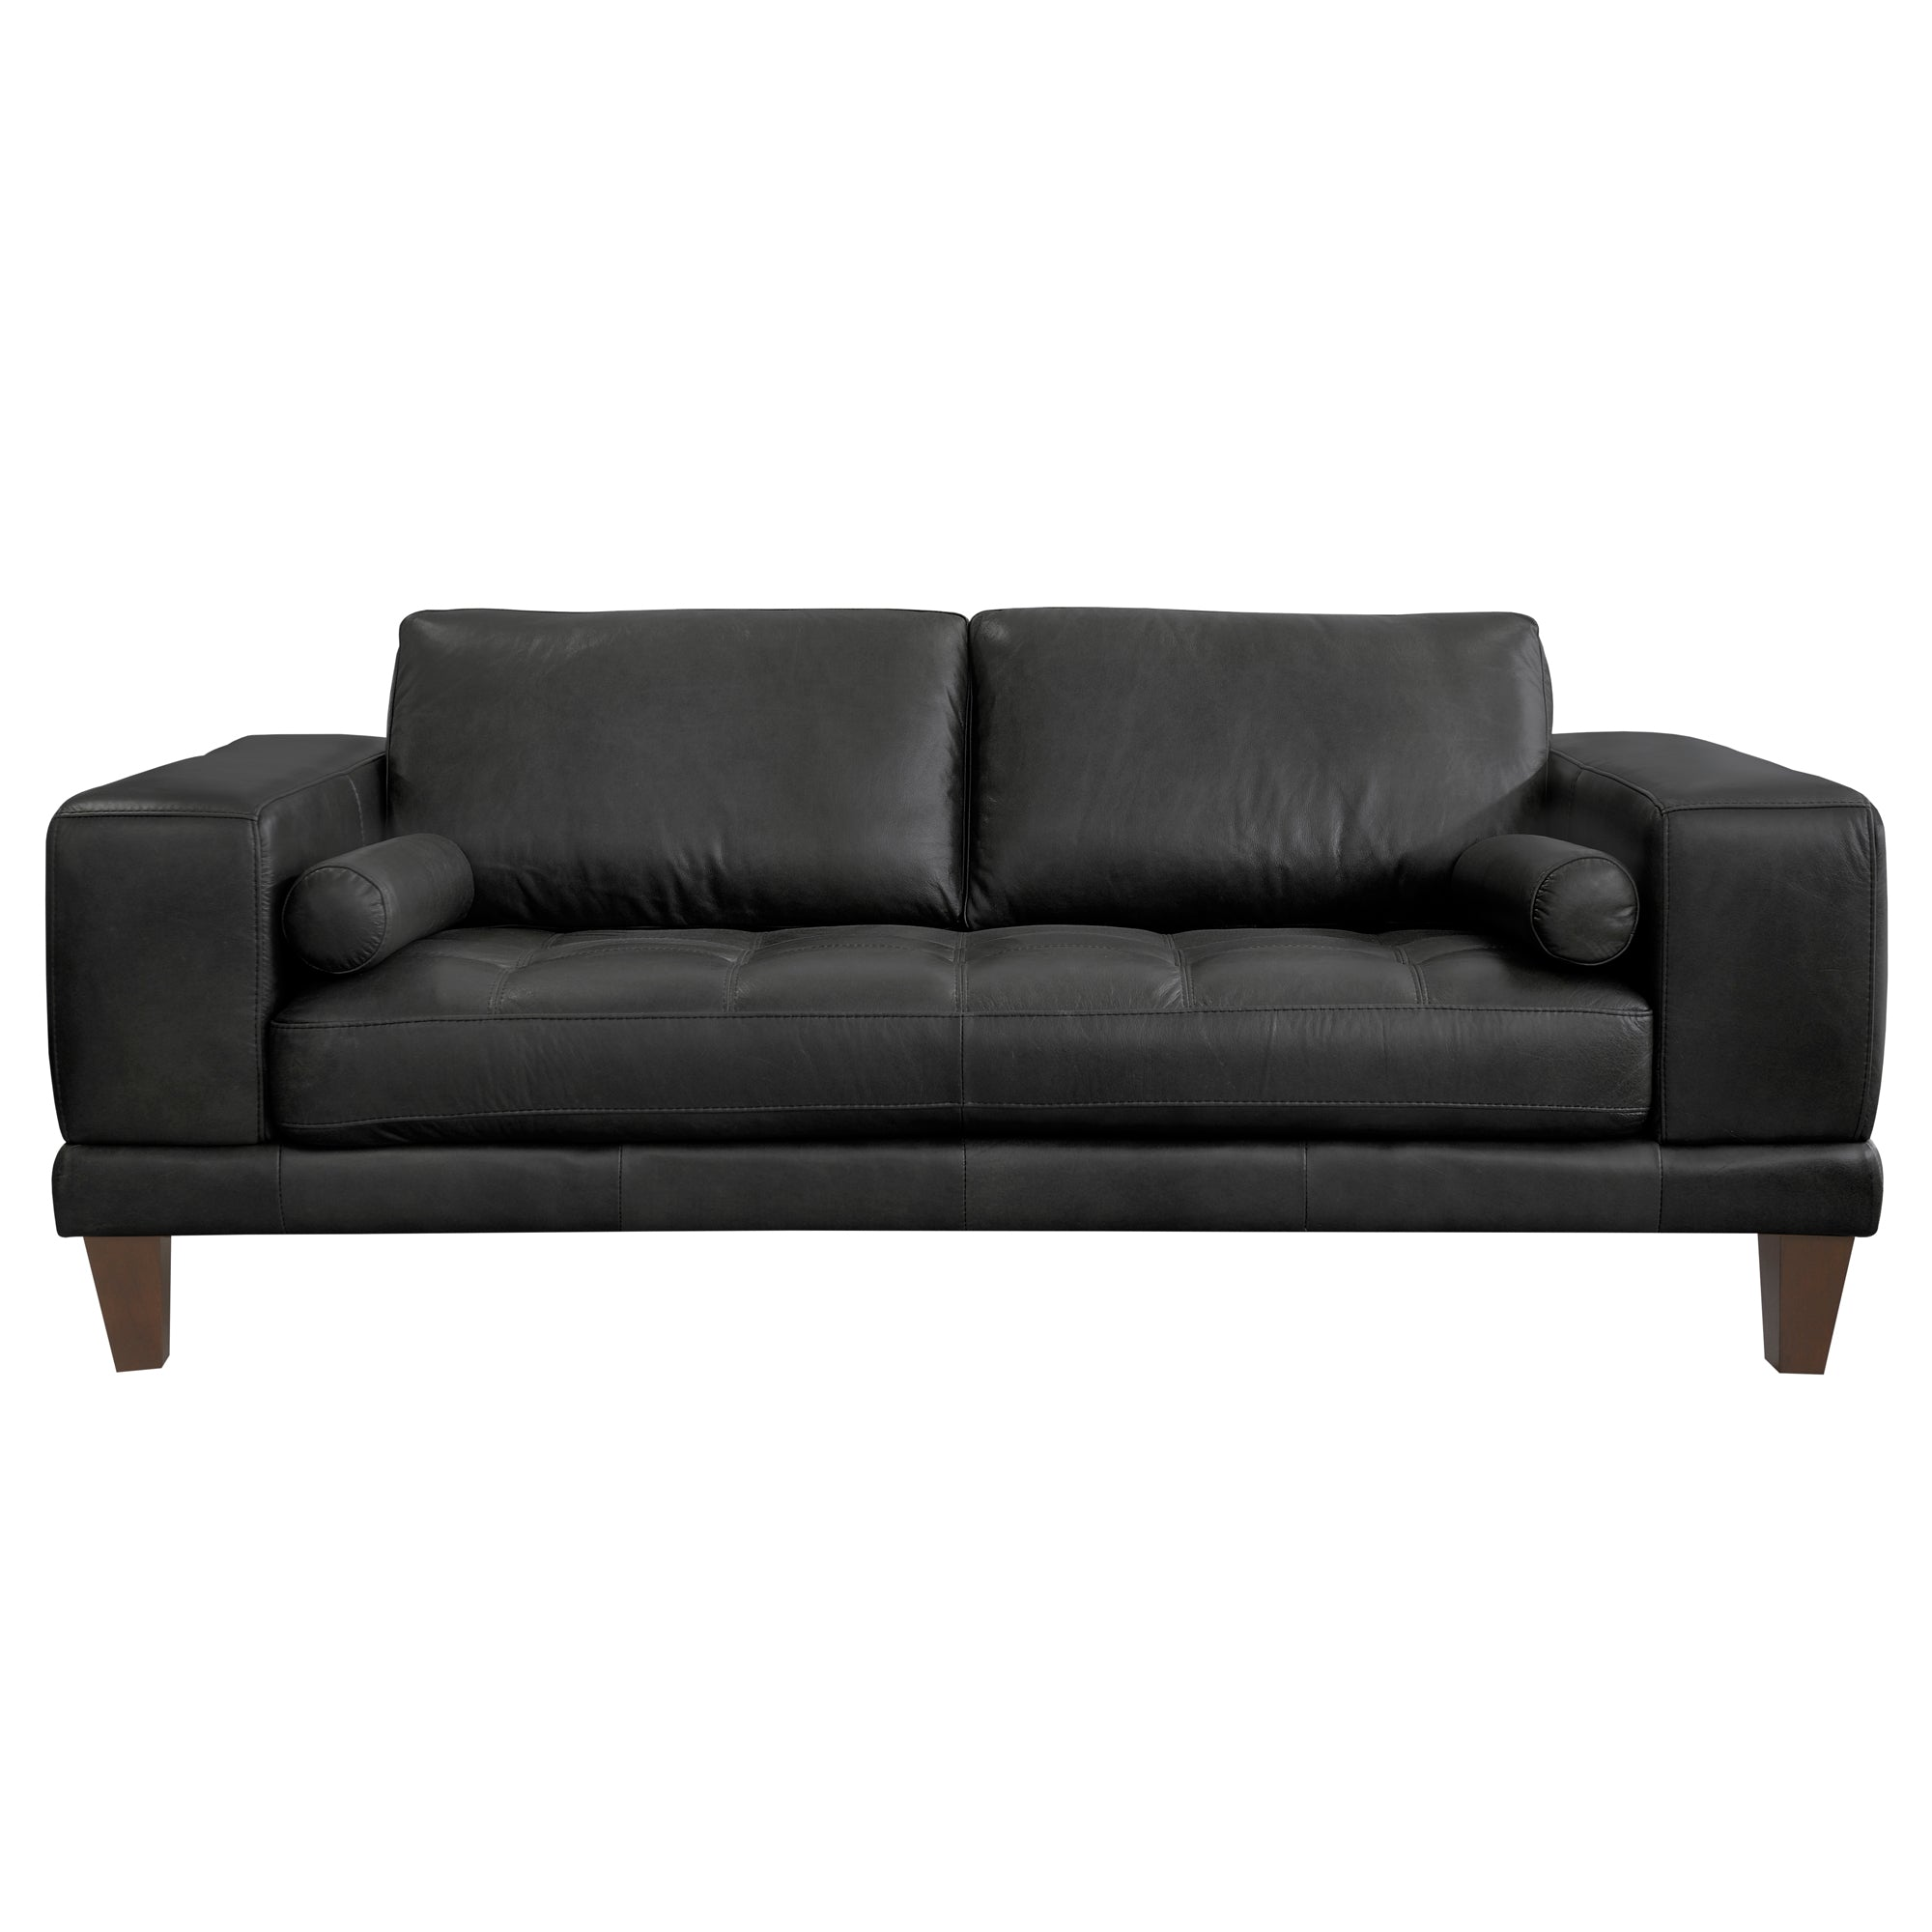 Contemporary Loveseat Genuine Black Leather Brown Wood Legs 10534 Product Photo